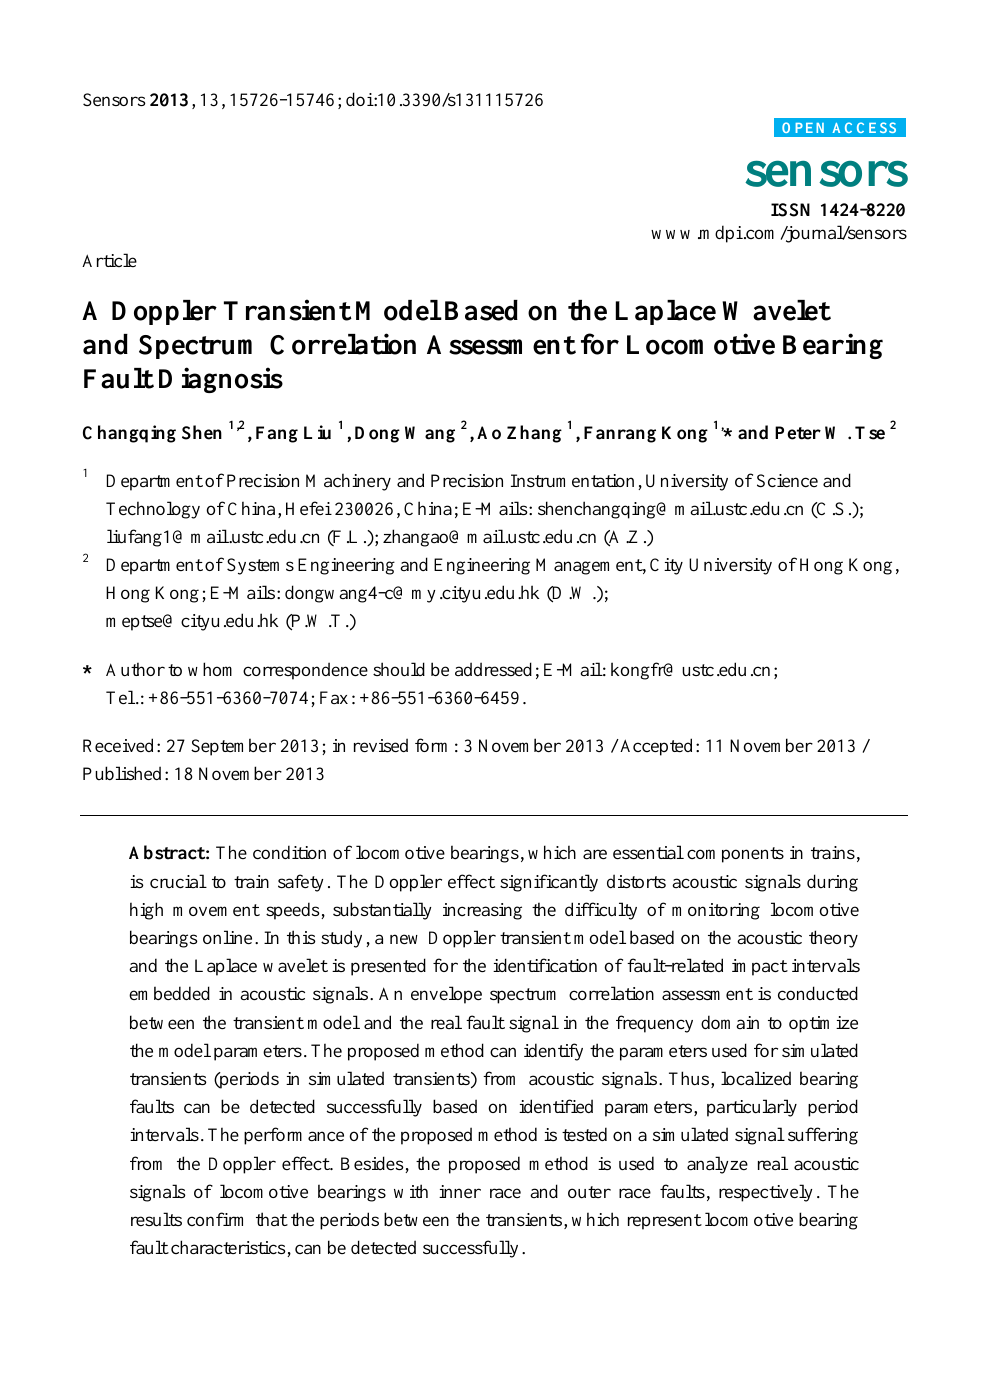 A Doppler Transient Model Based on the Laplace Wavelet and Spectrum